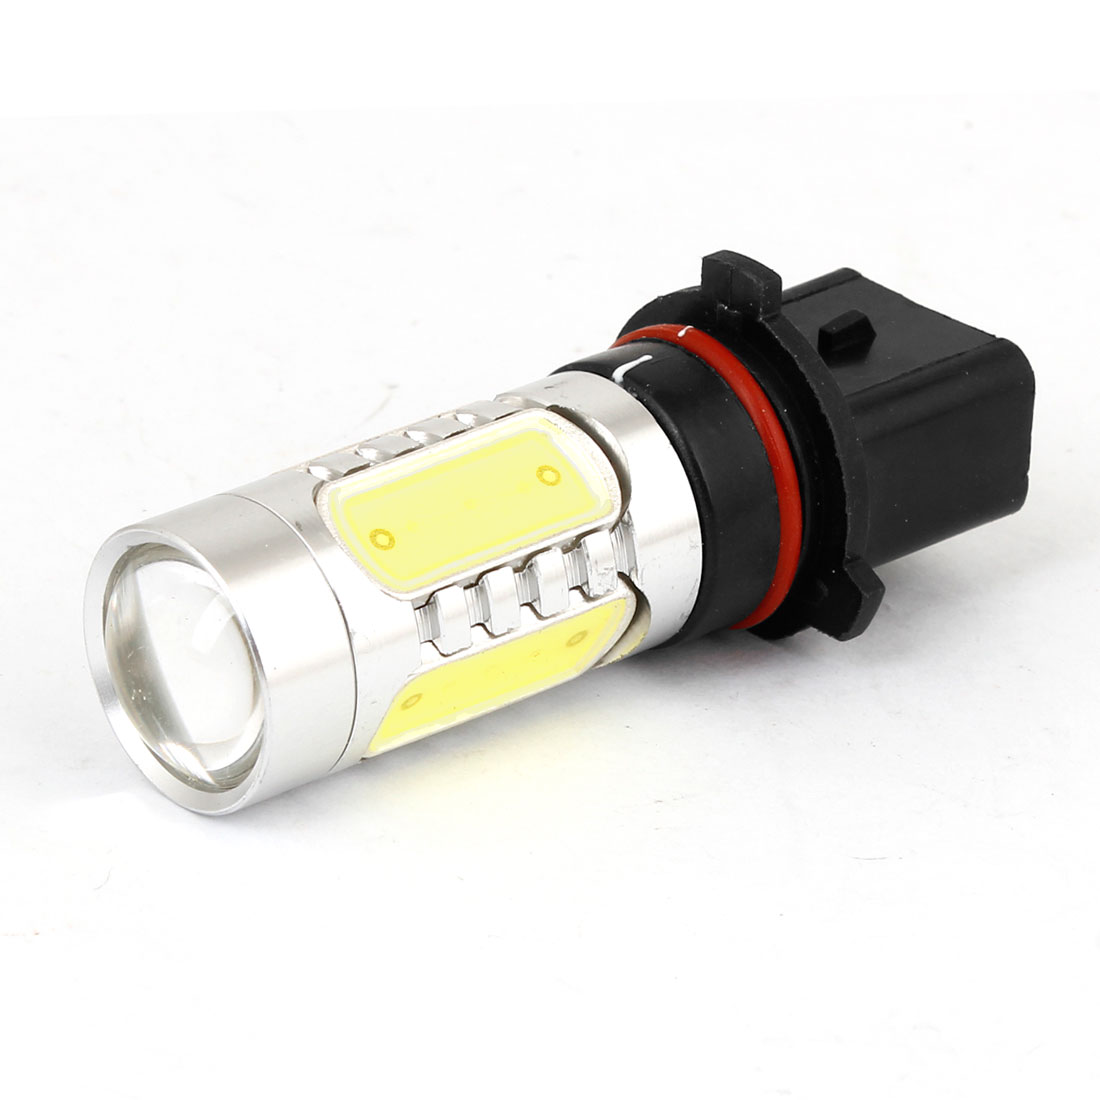 Car Auto P13W 5 LED White Fog Head Light Bulb Lamp 12V 7.5W